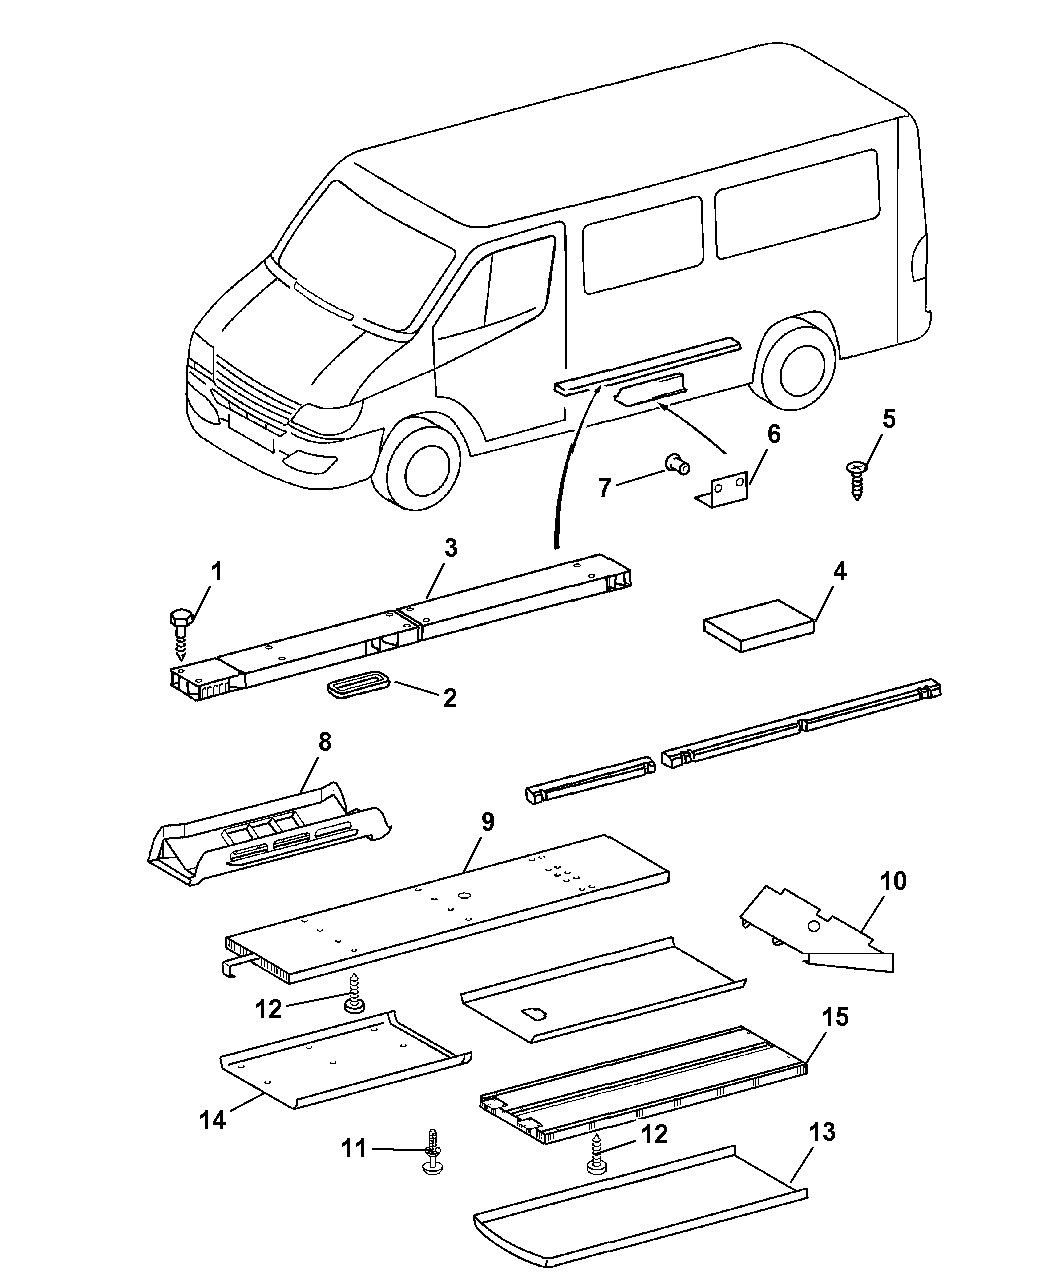 2006 dodge sprinter 2500 parts manual